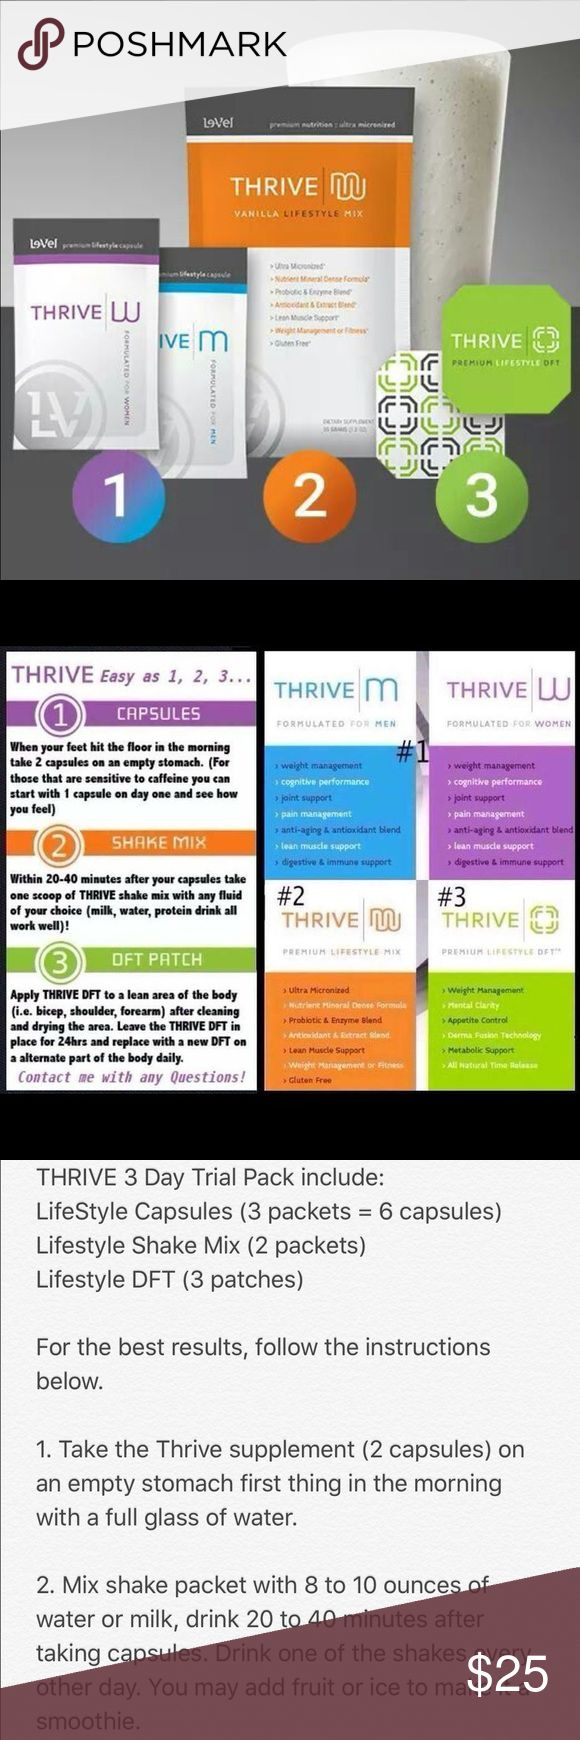 Le-vel THRIVE 3 day trial THRIVE 3 Day Trial Pack include: LifeStyle Capsules (3 packets = 6 capsules) Lifestyle Shake Mix (2 packets) Lifestyle DFT (3 patches) https://reinaldobonilla.le-vel.com reinaldo.thrivelevel@gmail.com contact me for more information on the product! #IAMLEVEL Le-vel Other